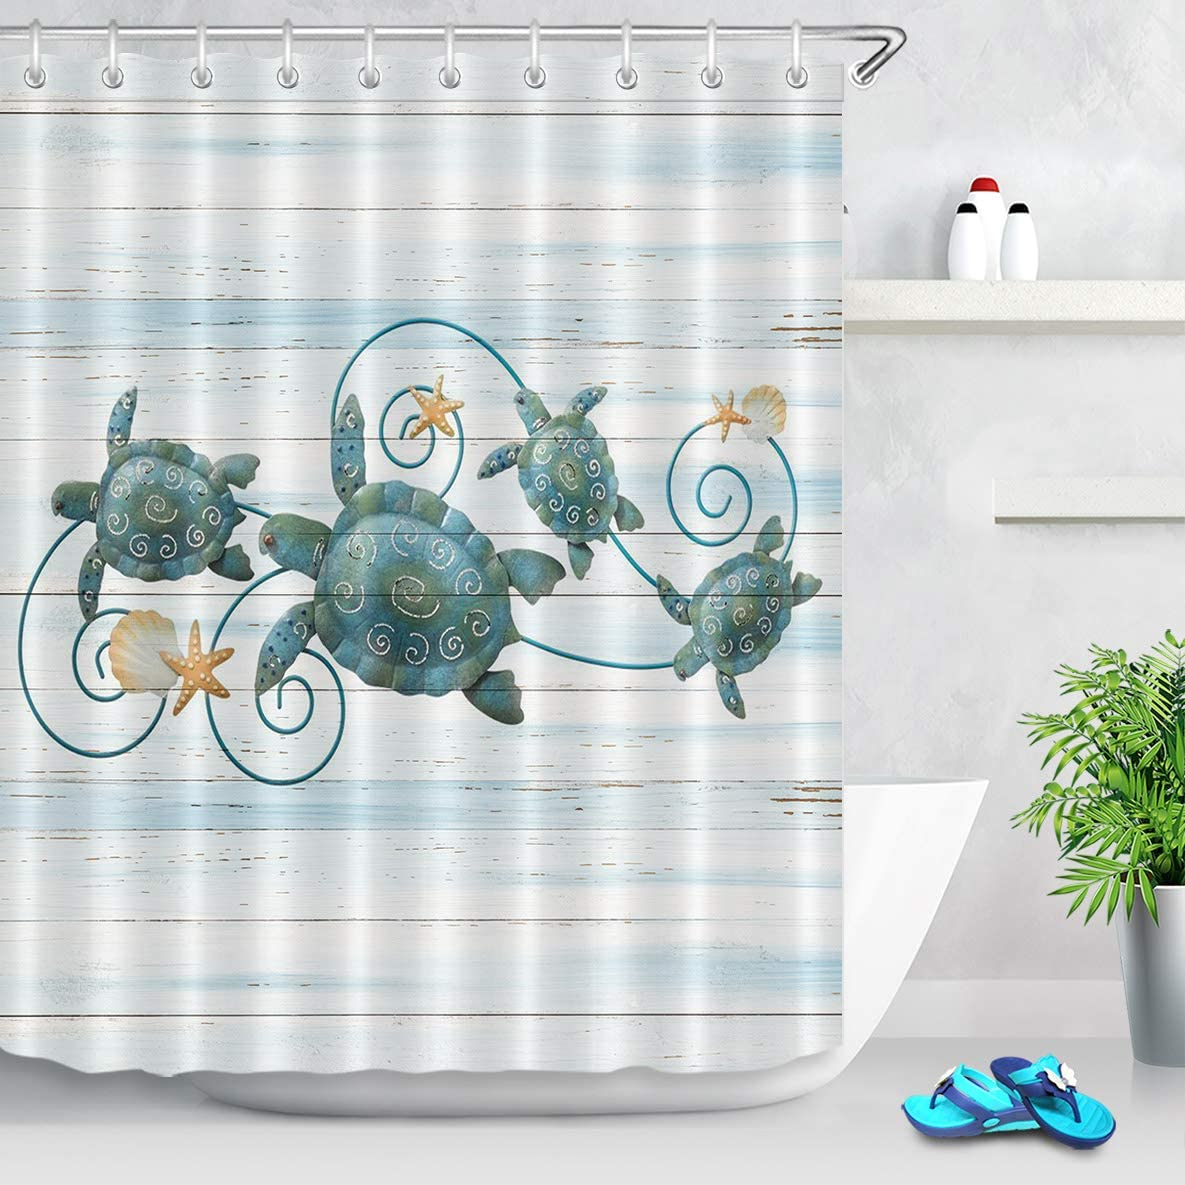 ECOTOB Sea Turtle Shower Curtain Decor, Ocean Sea Turtles and Starfish On Rustic Vintage Wood Panels Shower Curtains 60X72 inch Polyester Fabric Bathroom Decorations Bath Curtains Hooks Included